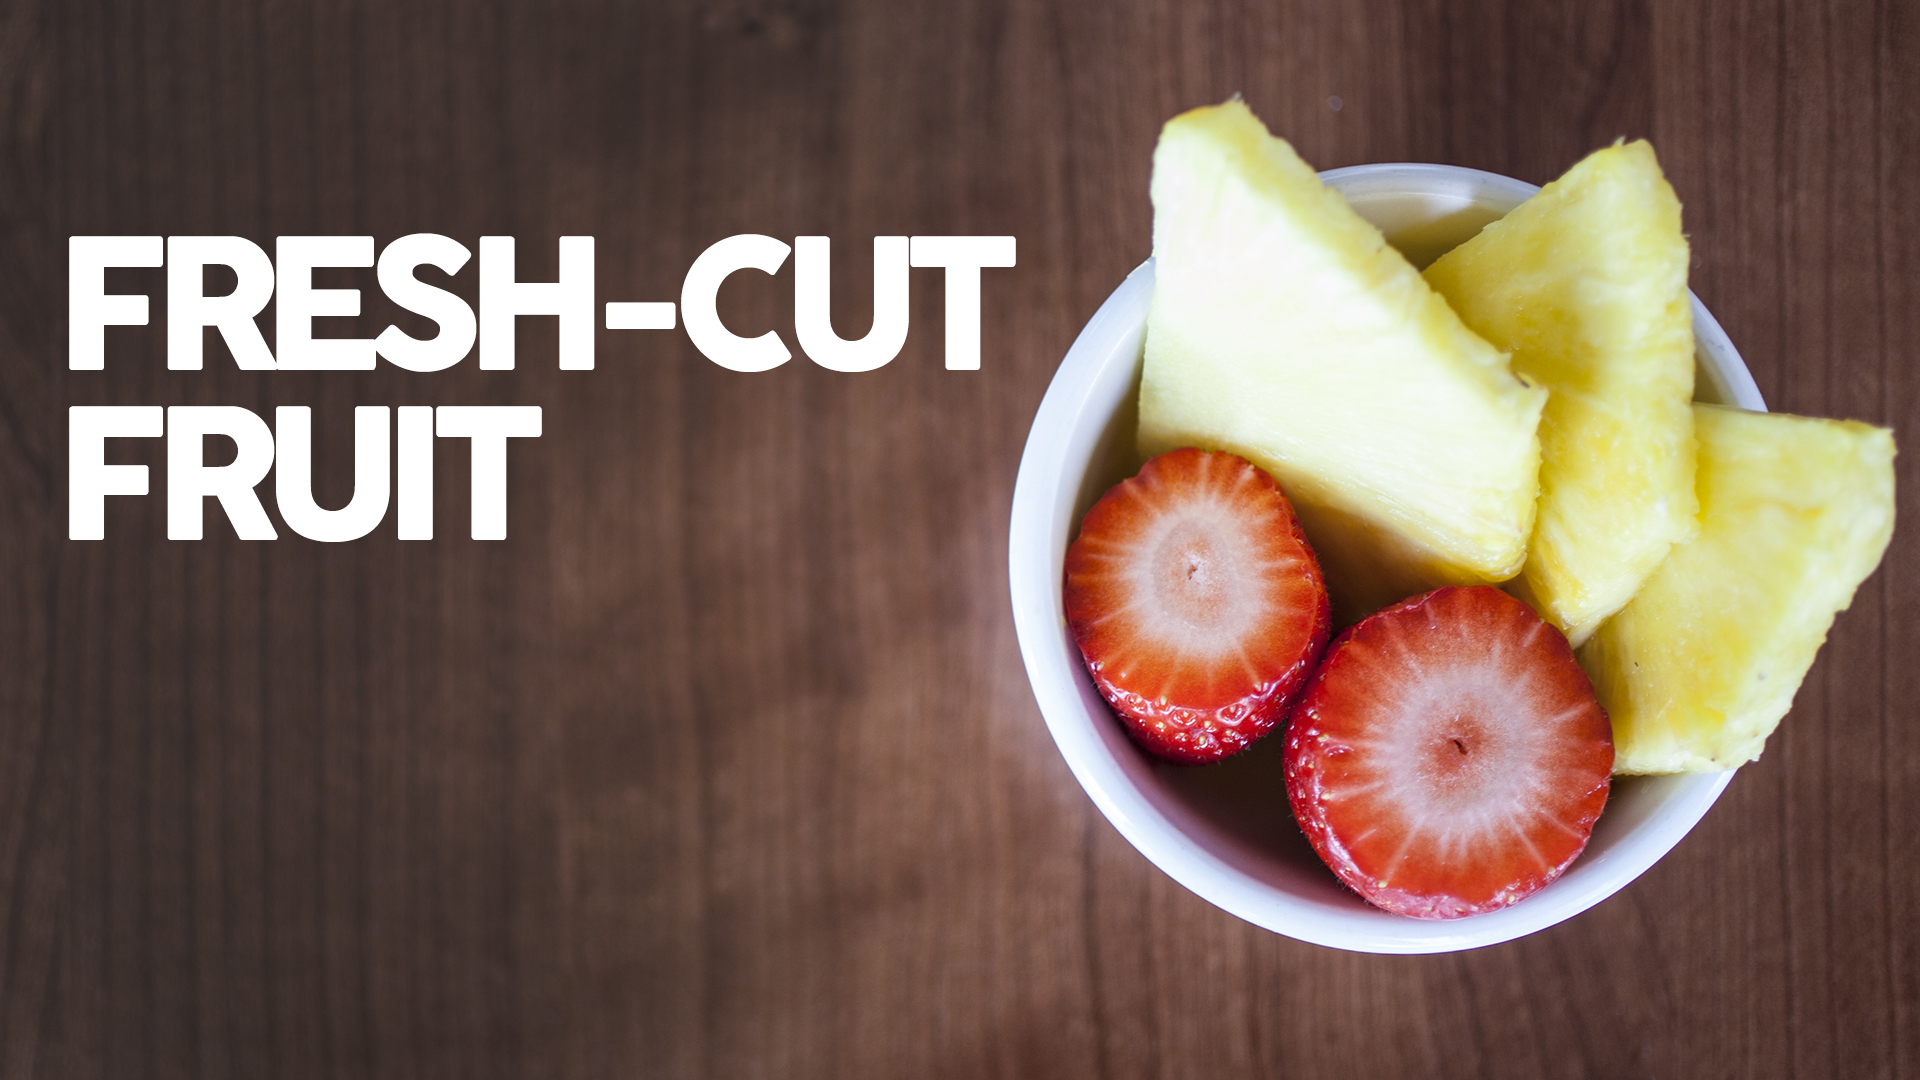 Fresh-Cut Fruit